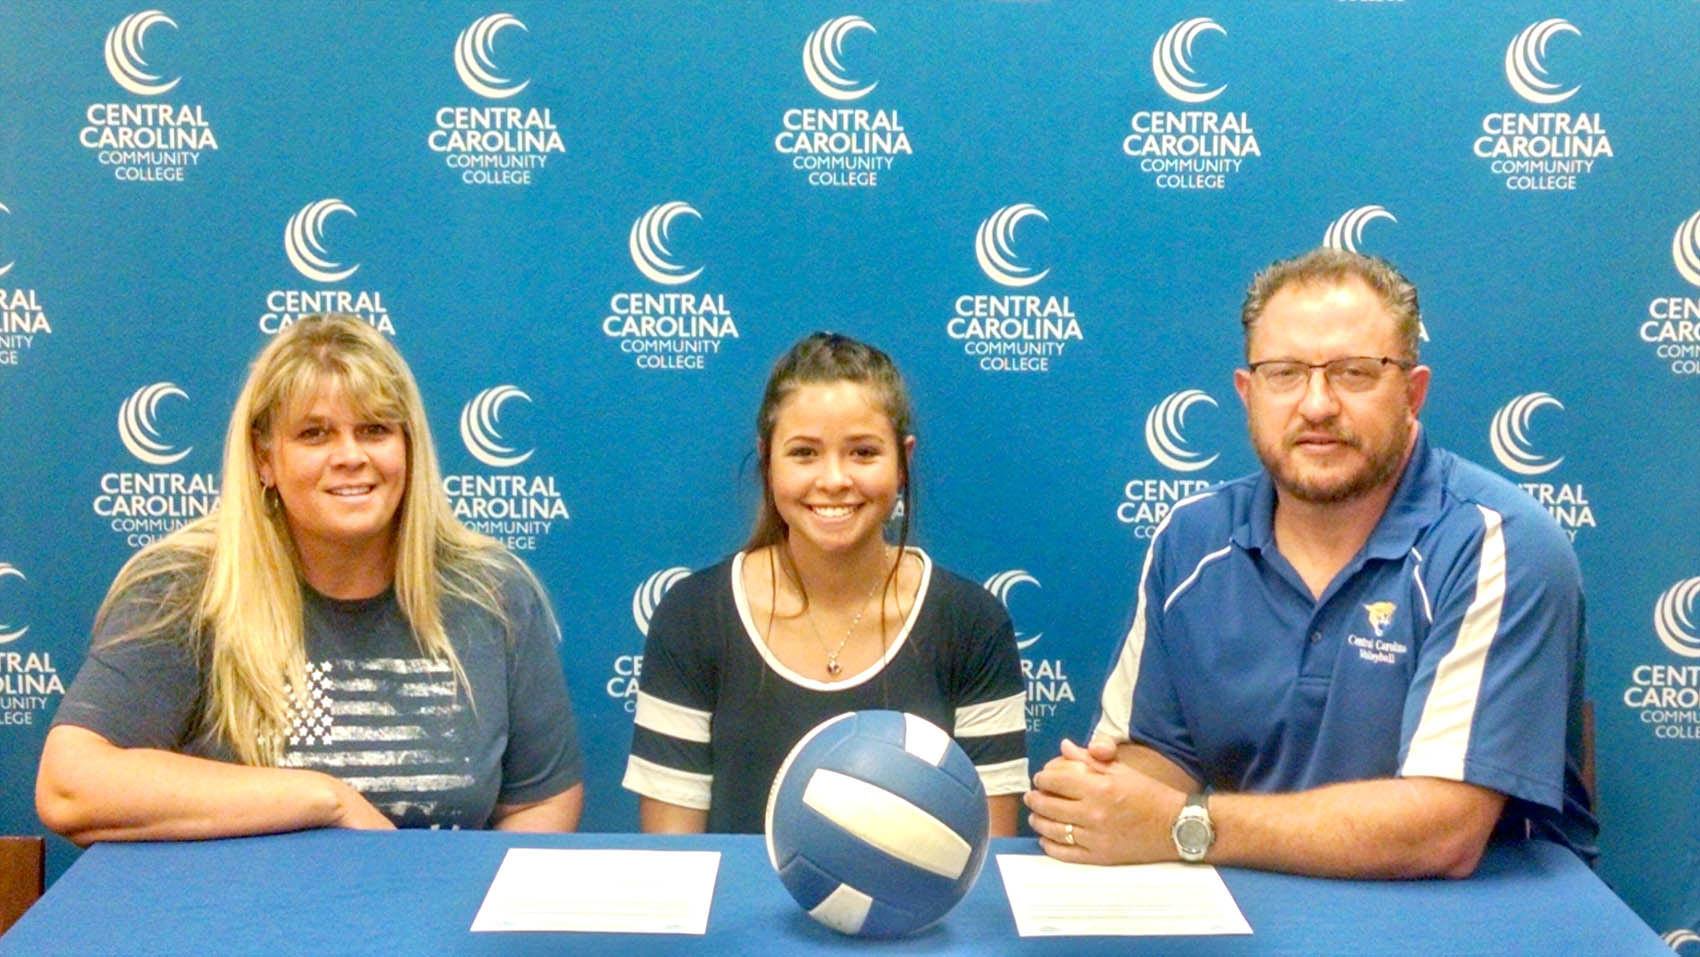 Click to enlarge,  Alexis Mackenzie (center) will join the Central Carolina Community College volleyball program. Also pictured are Alexis Mackenzie's mother, Lisa (left), and CCCC Volleyball Coach Bill Carter.